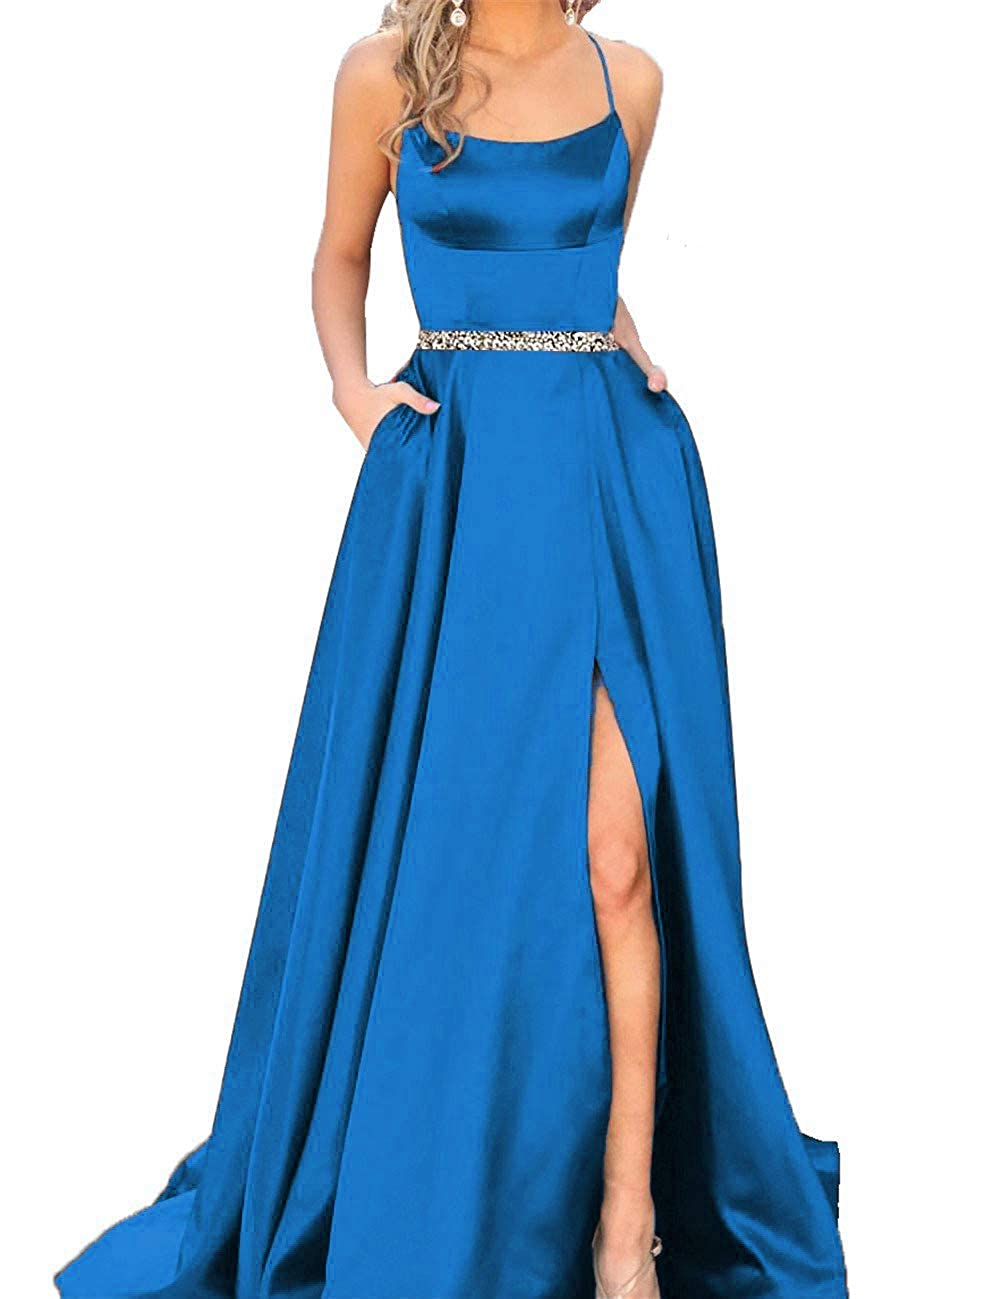 bluee With Beaded Fanciest Women's Halter Slit Satin Prom Dresses Long Backless Evening Formal Gowns